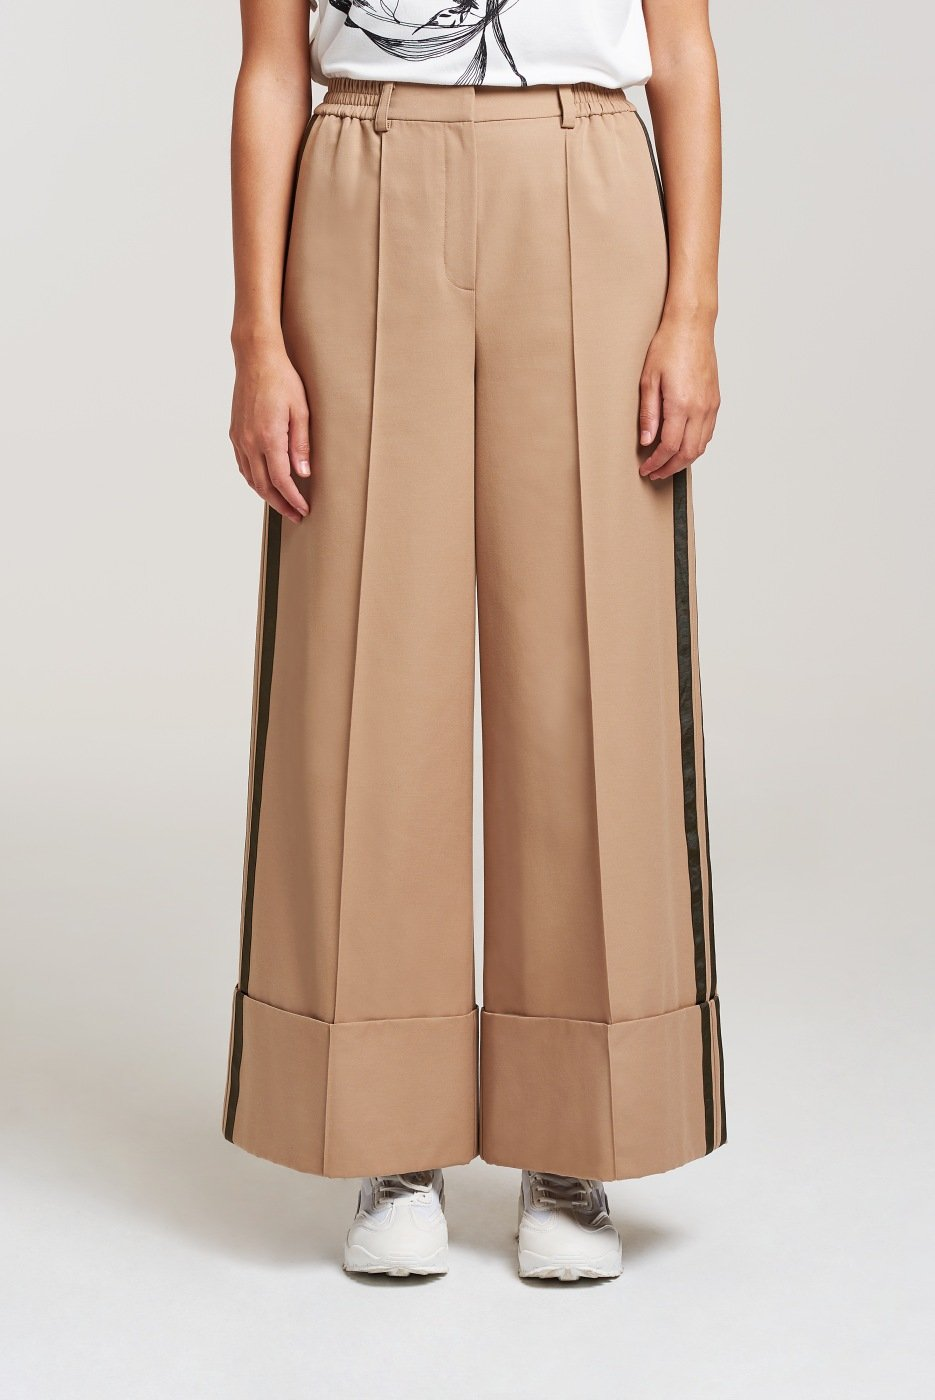 Load image into Gallery viewer, Palones Notting Hill Wide Leg Trouser